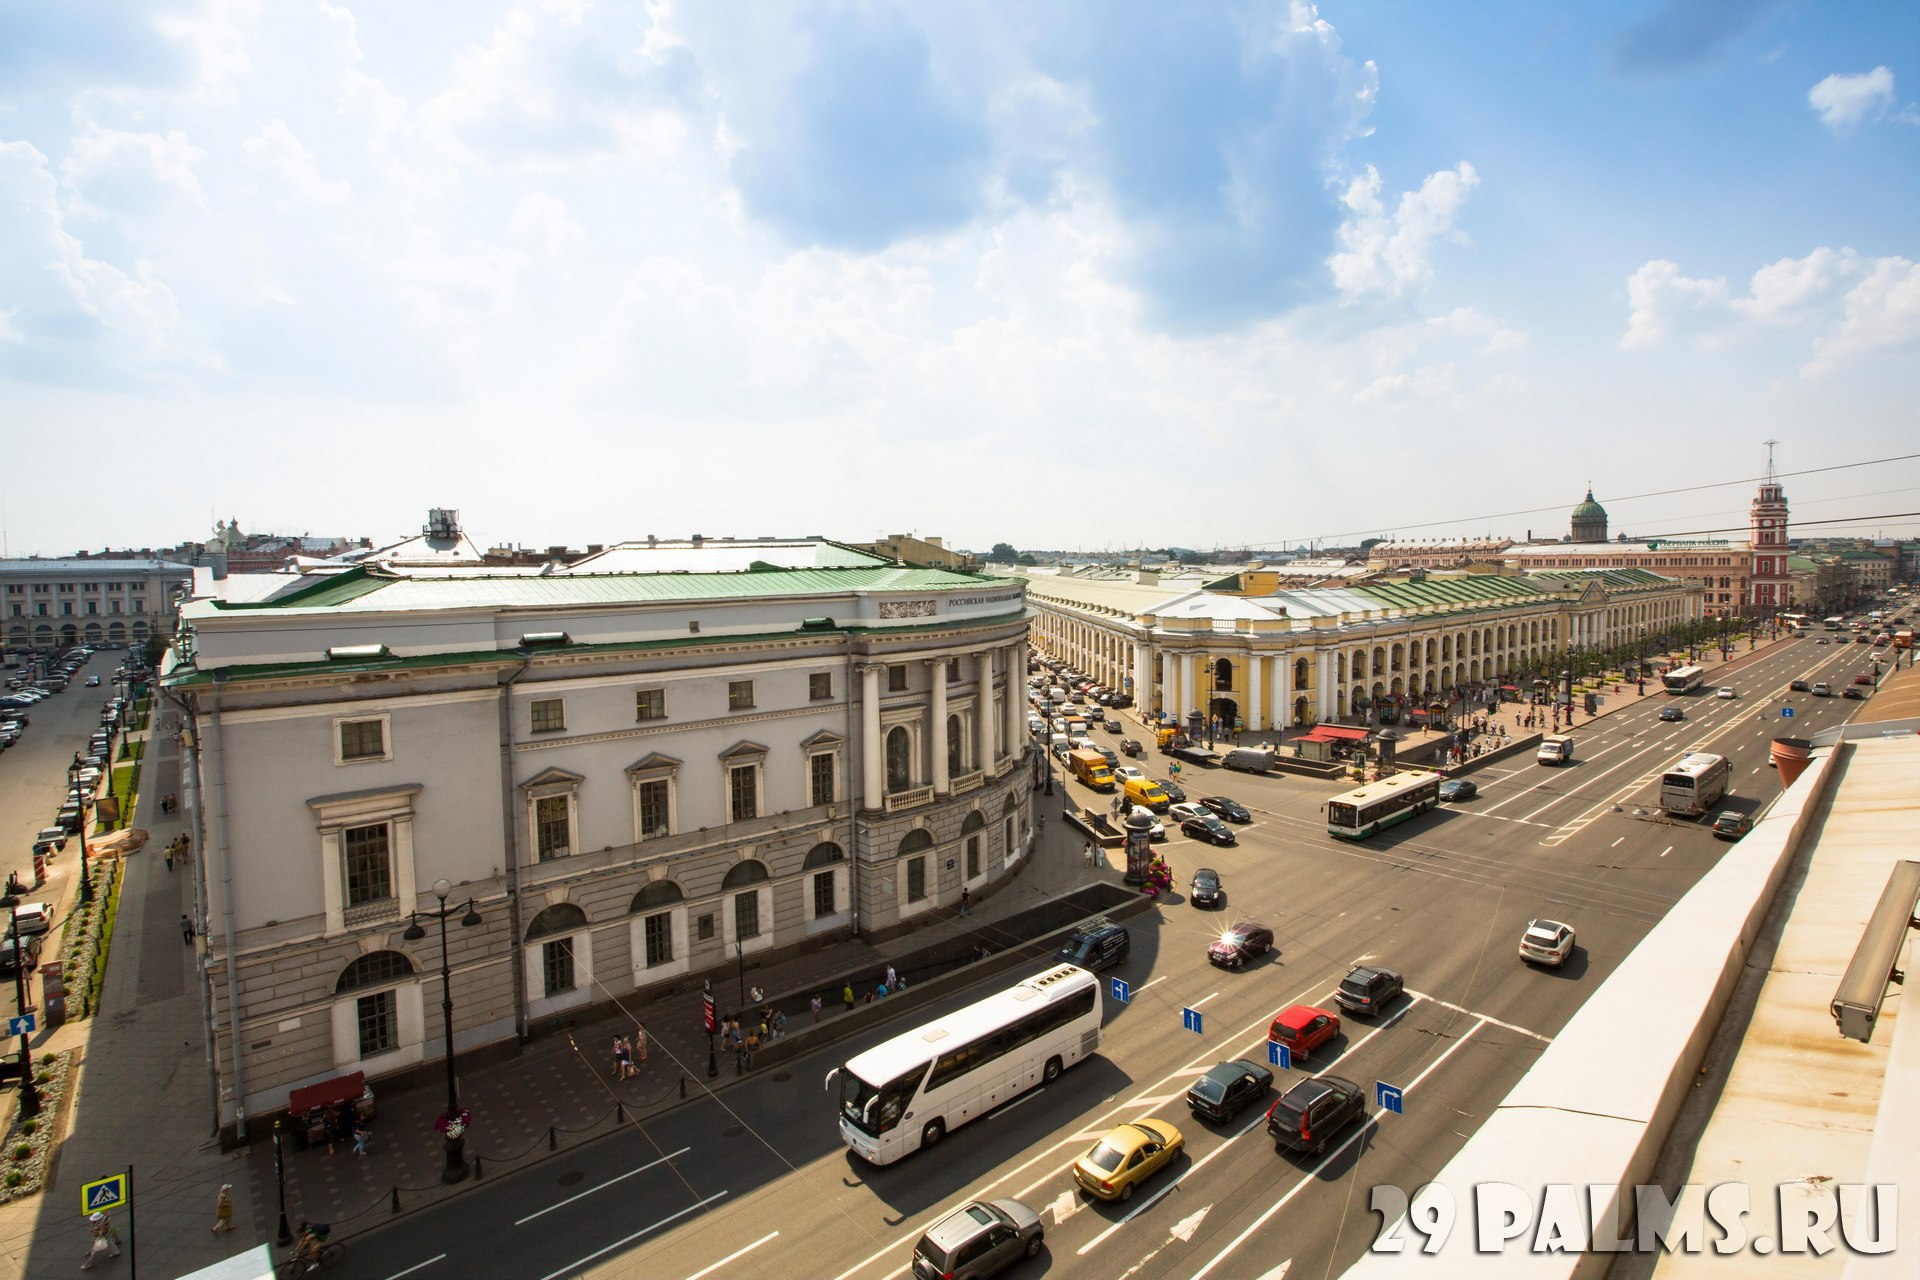 Санкт-Петербург.Top view of the Metro and mall Gostiny Dvor on Nevsky Prospect, SPb, Russia. Station opened on 1967, is one of busiest stations in the entire SPb Metro